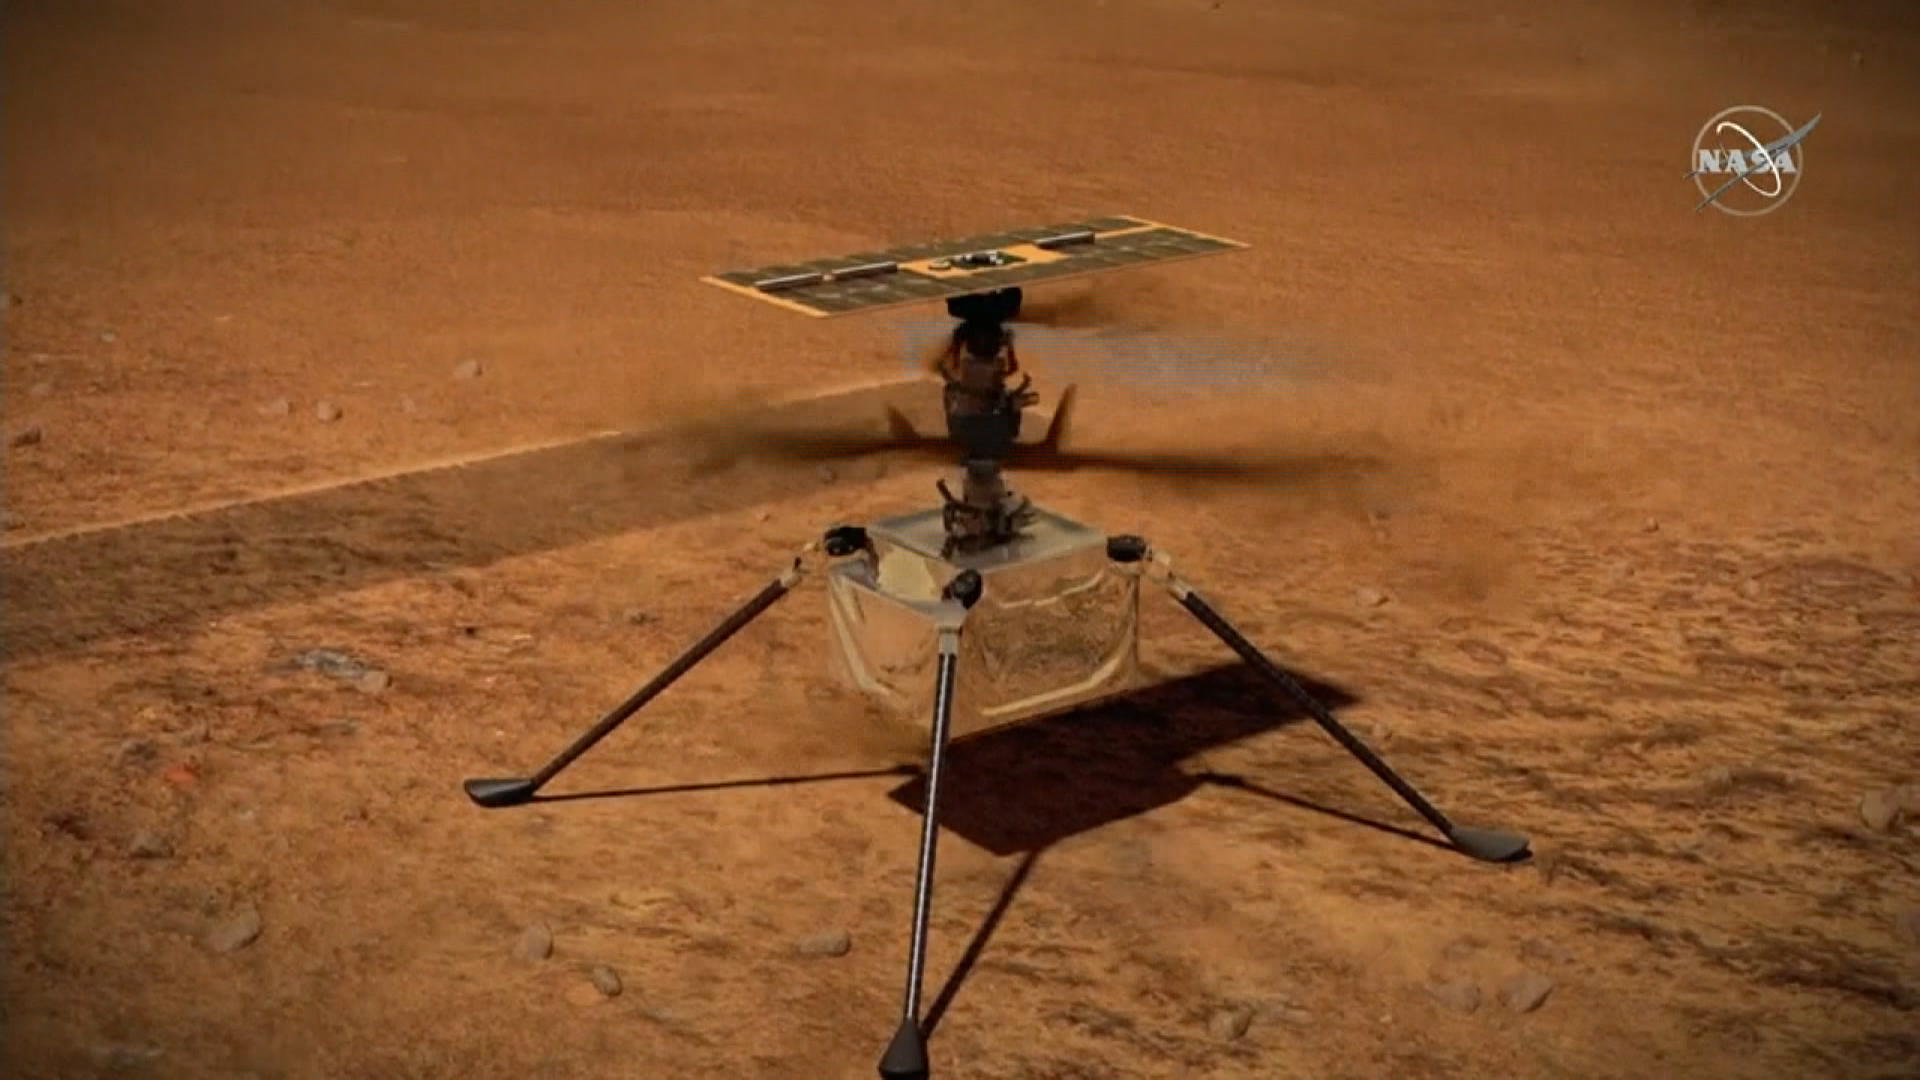 NASA Hopes to Have Mars Helicopter Fly Again